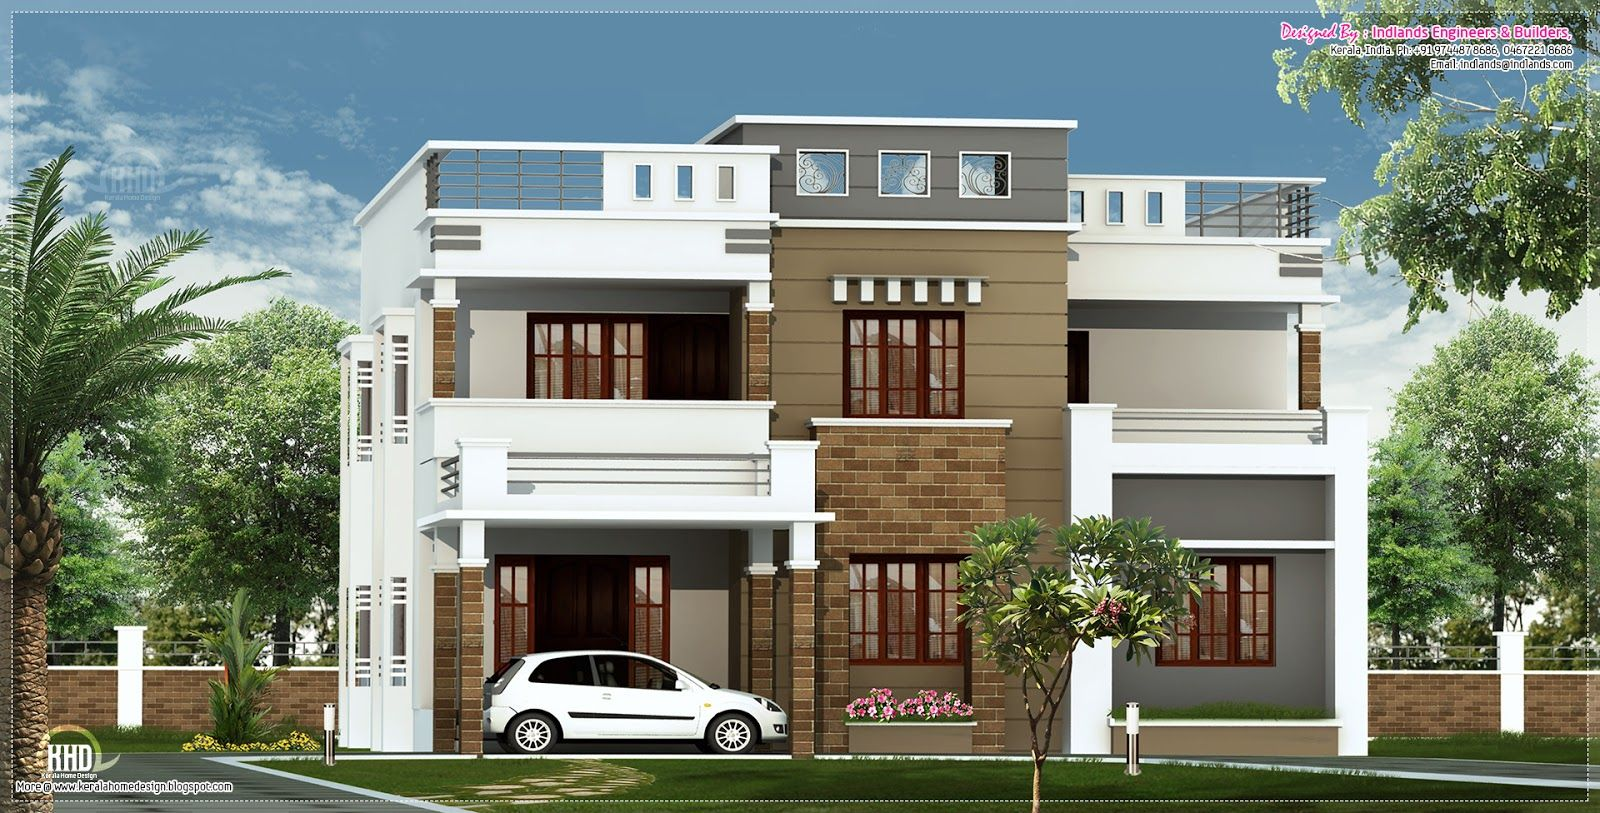 4 bedroom house with roof terrace plans google search for Simple house elevation models